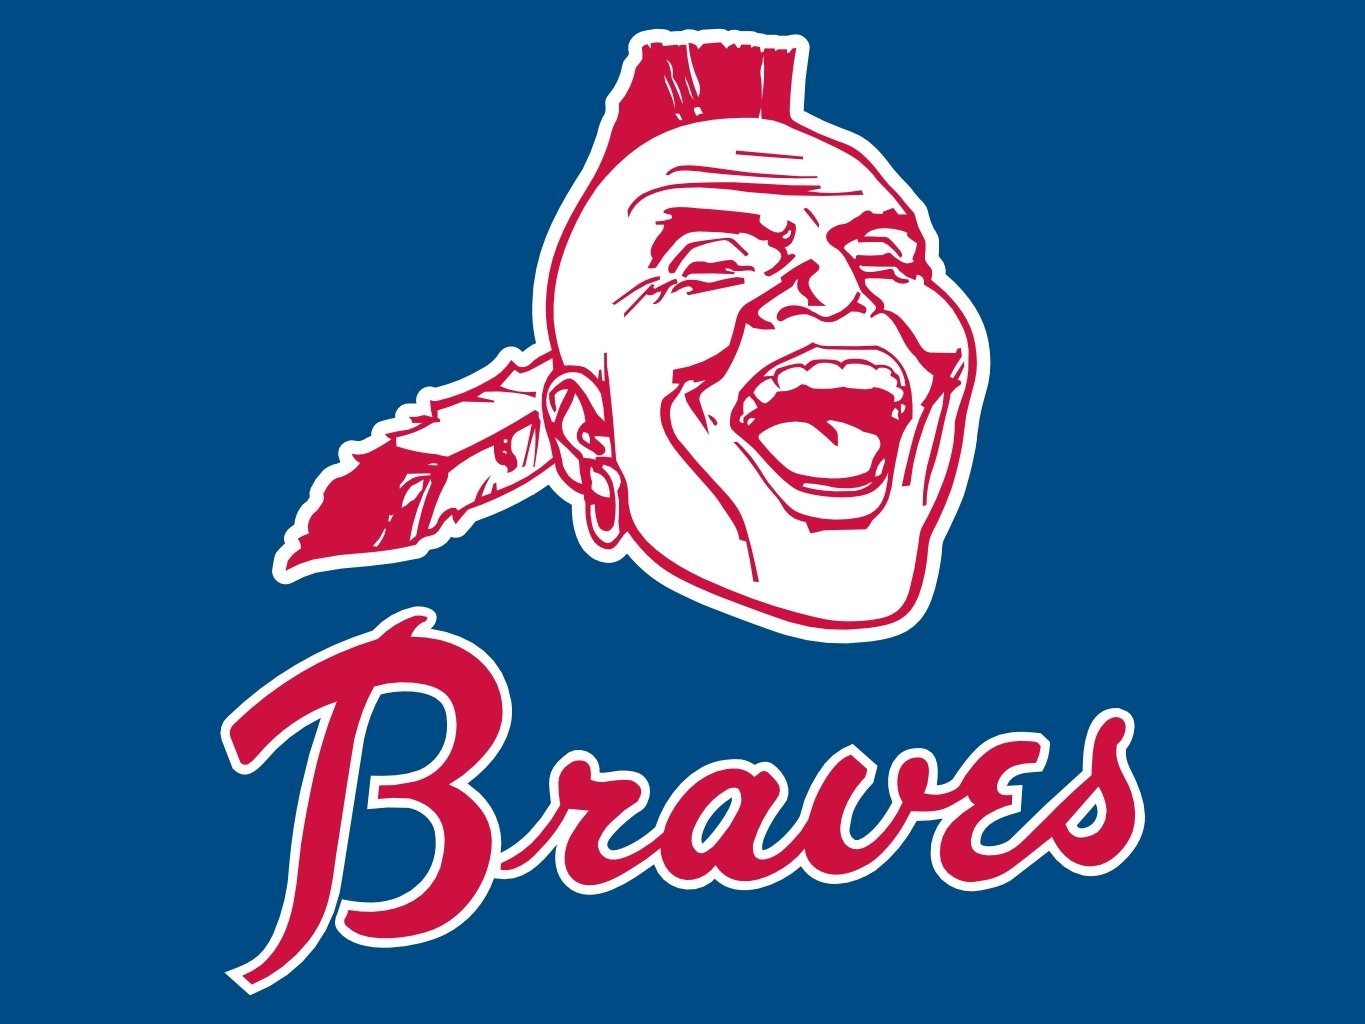 2 Atlanta Braves Hd Wallpapers Background Images Wallpaper Abyss